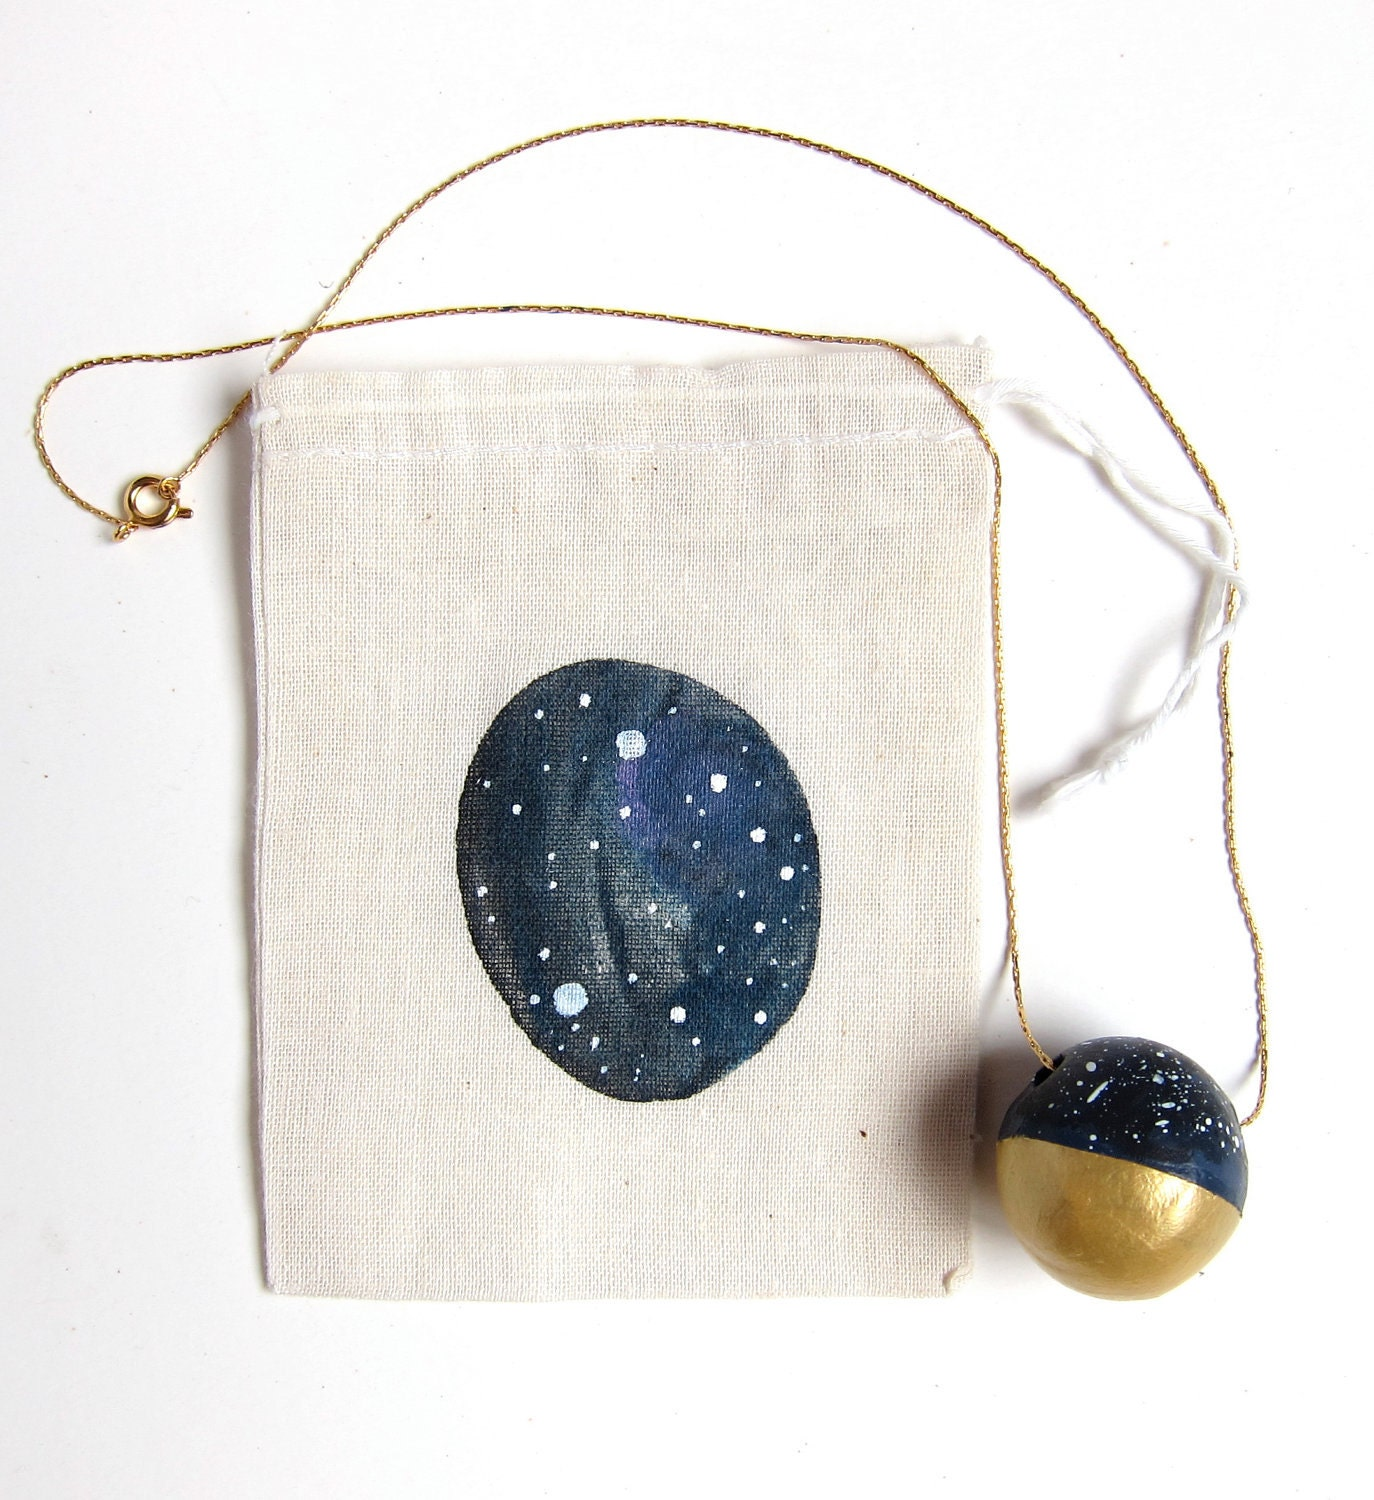 Constellation necklace - night sky - stars - gold dipped - astrology print - gift set - zodiac - navy black gold white - charity - oneeyeddog